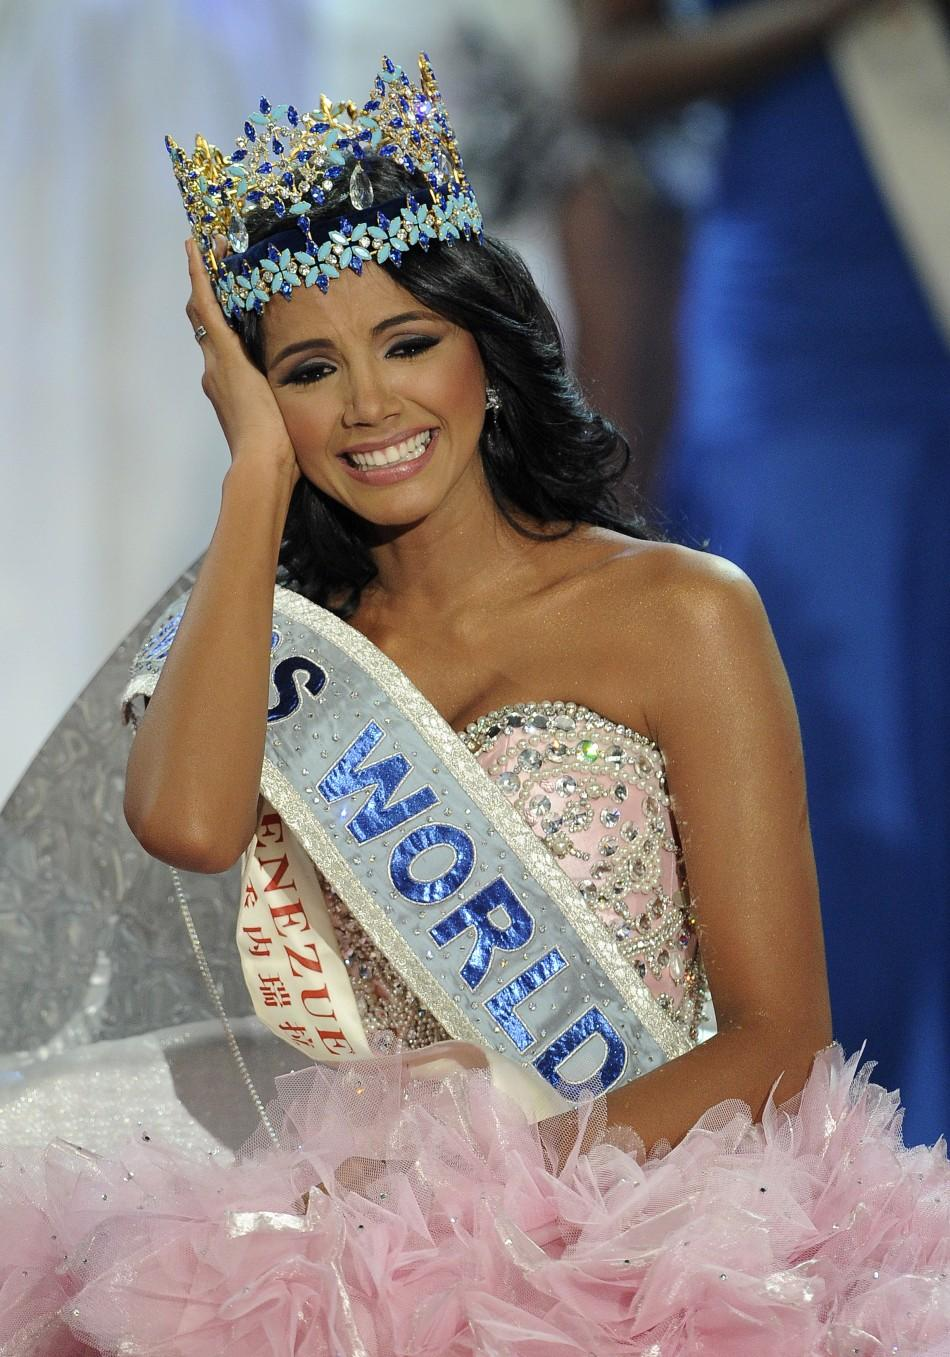 https://s1.ibtimes.com/sites/www.ibtimes.com/files/styles/embed/public/2011/11/07/185971-miss-world-2011-miss-venezuela-ivian-sarcos-wins-the-crown-full-covera.jpg